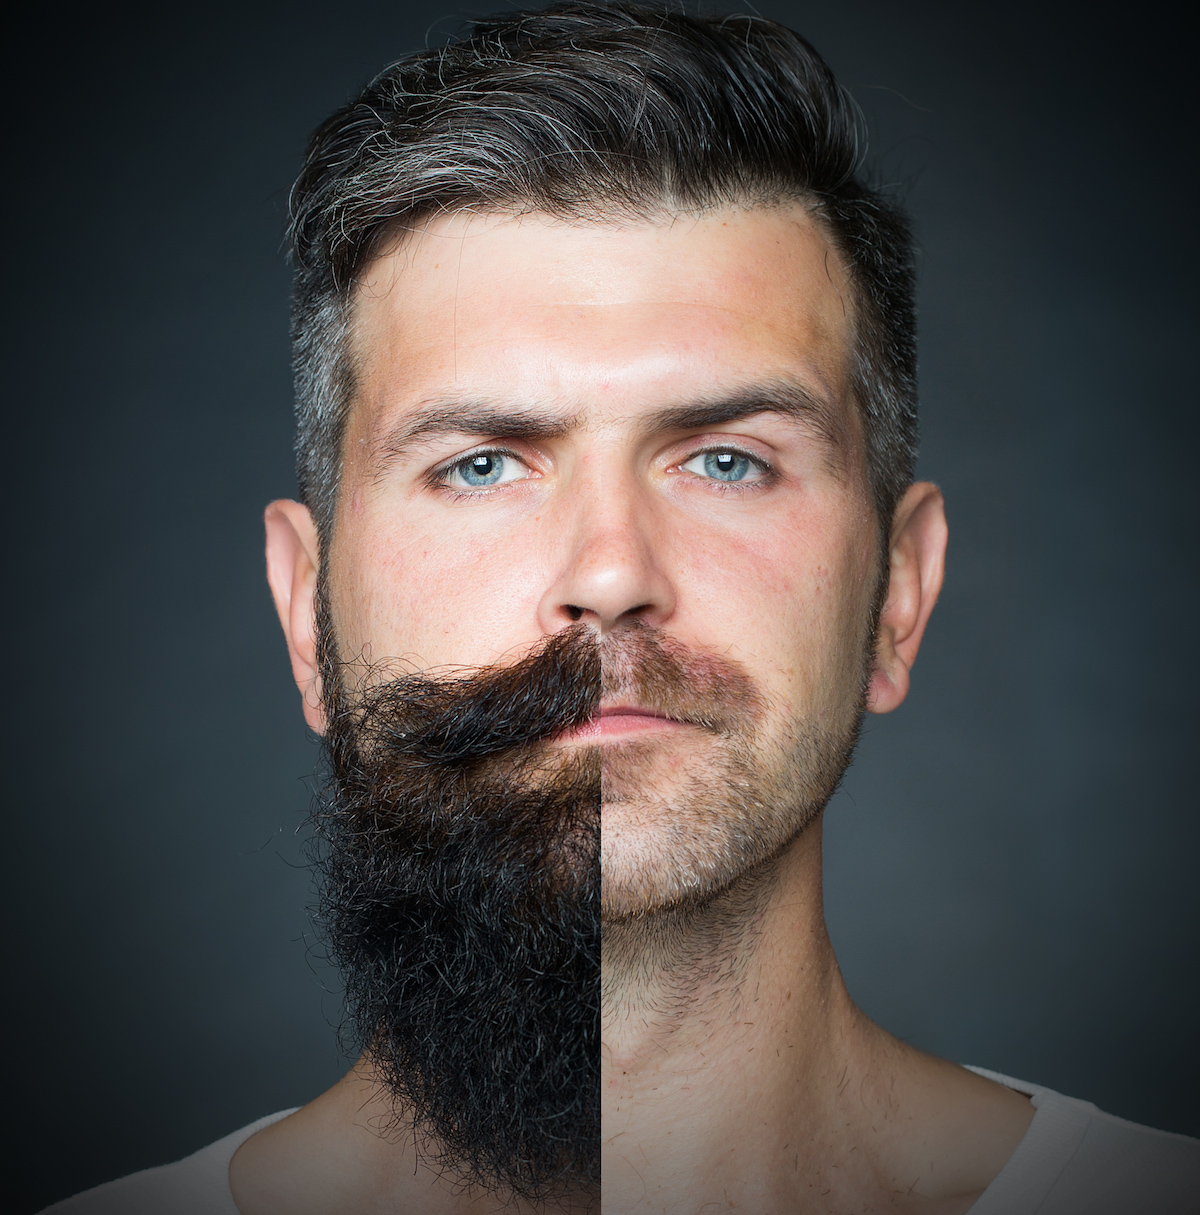 beard and hair styles top 4 beard trends 2018 beard styles turning heads in the 3147 | Rotation of Facial Hair Styles 2018 Beard Trends